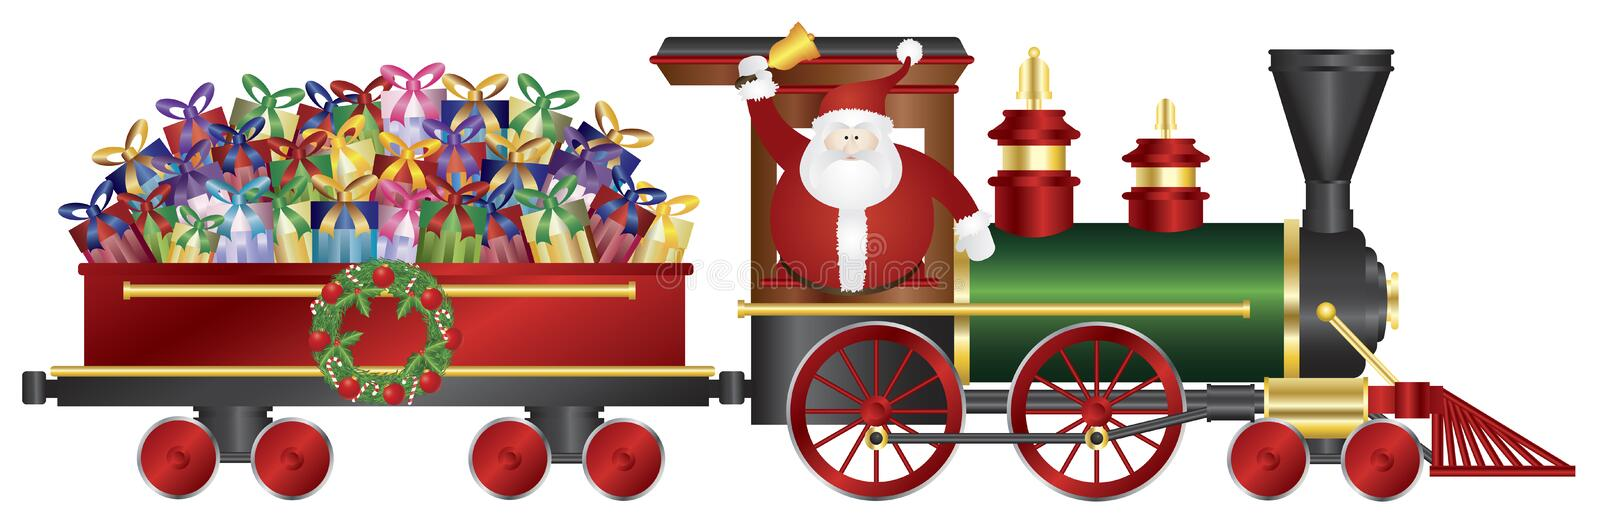 Santa Claus on Train Delivering Presents Illustrat. Santa Claus Ringing Bell on Train Delivering Wrapped Presents Isolated on White Background Illustration vector illustration